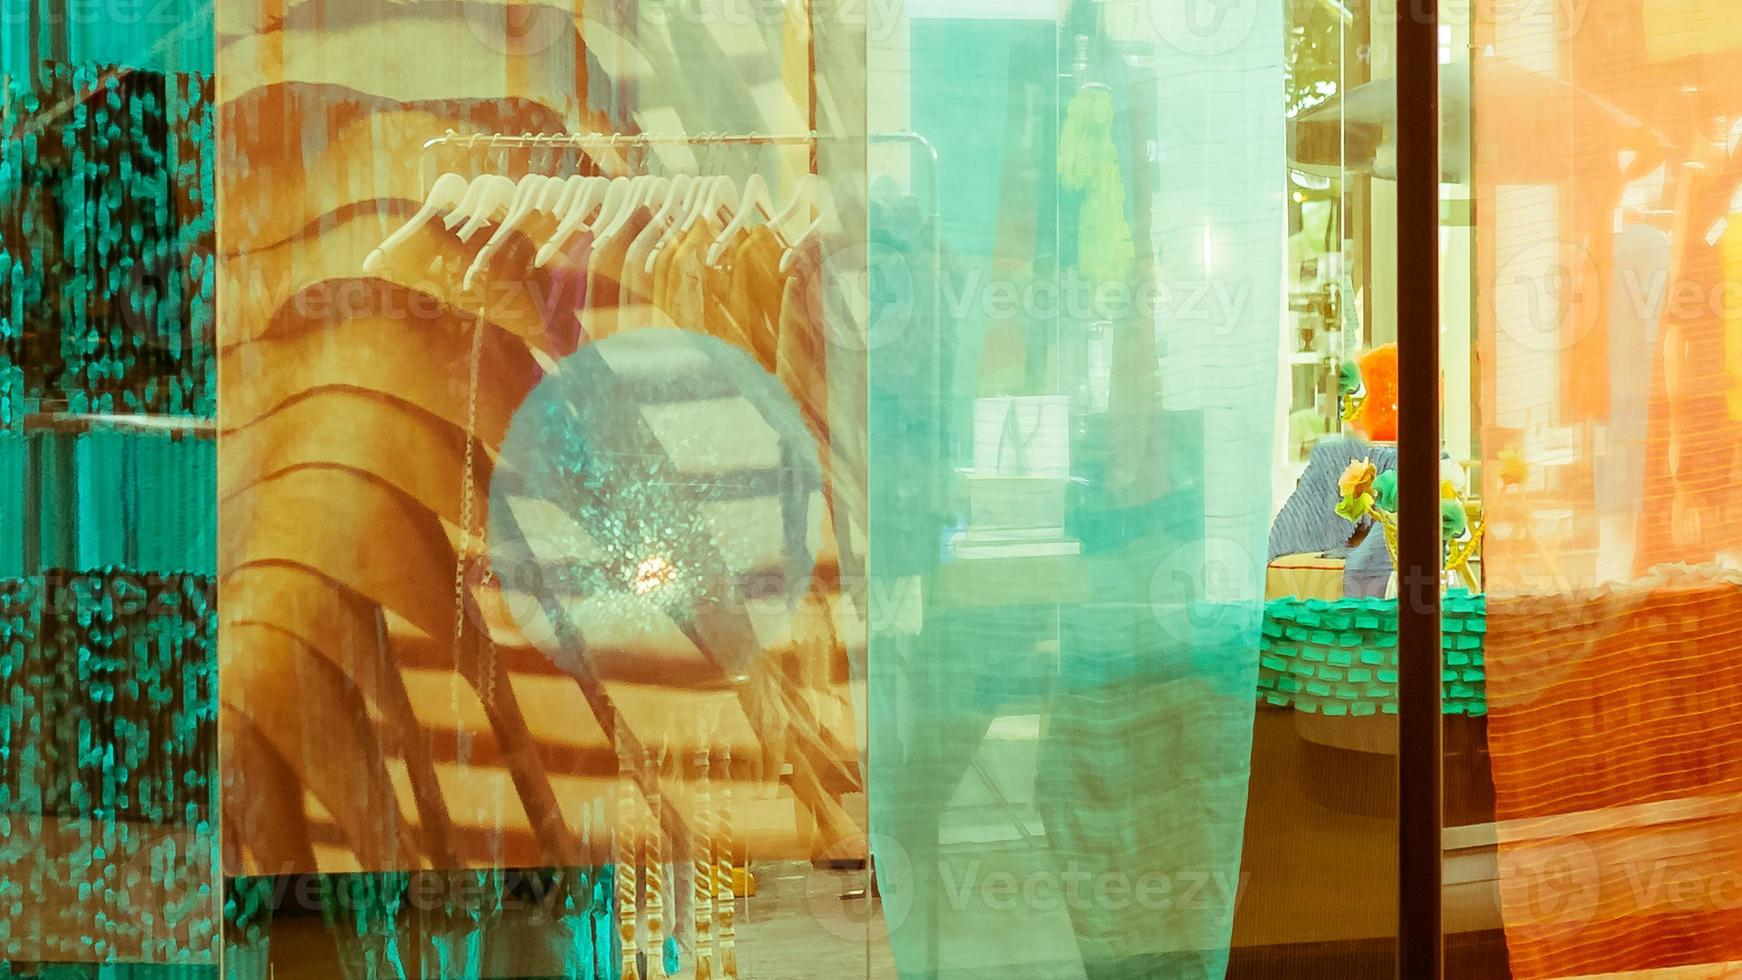 Double-Exposure,Mirror reflection of Clothing Store photo